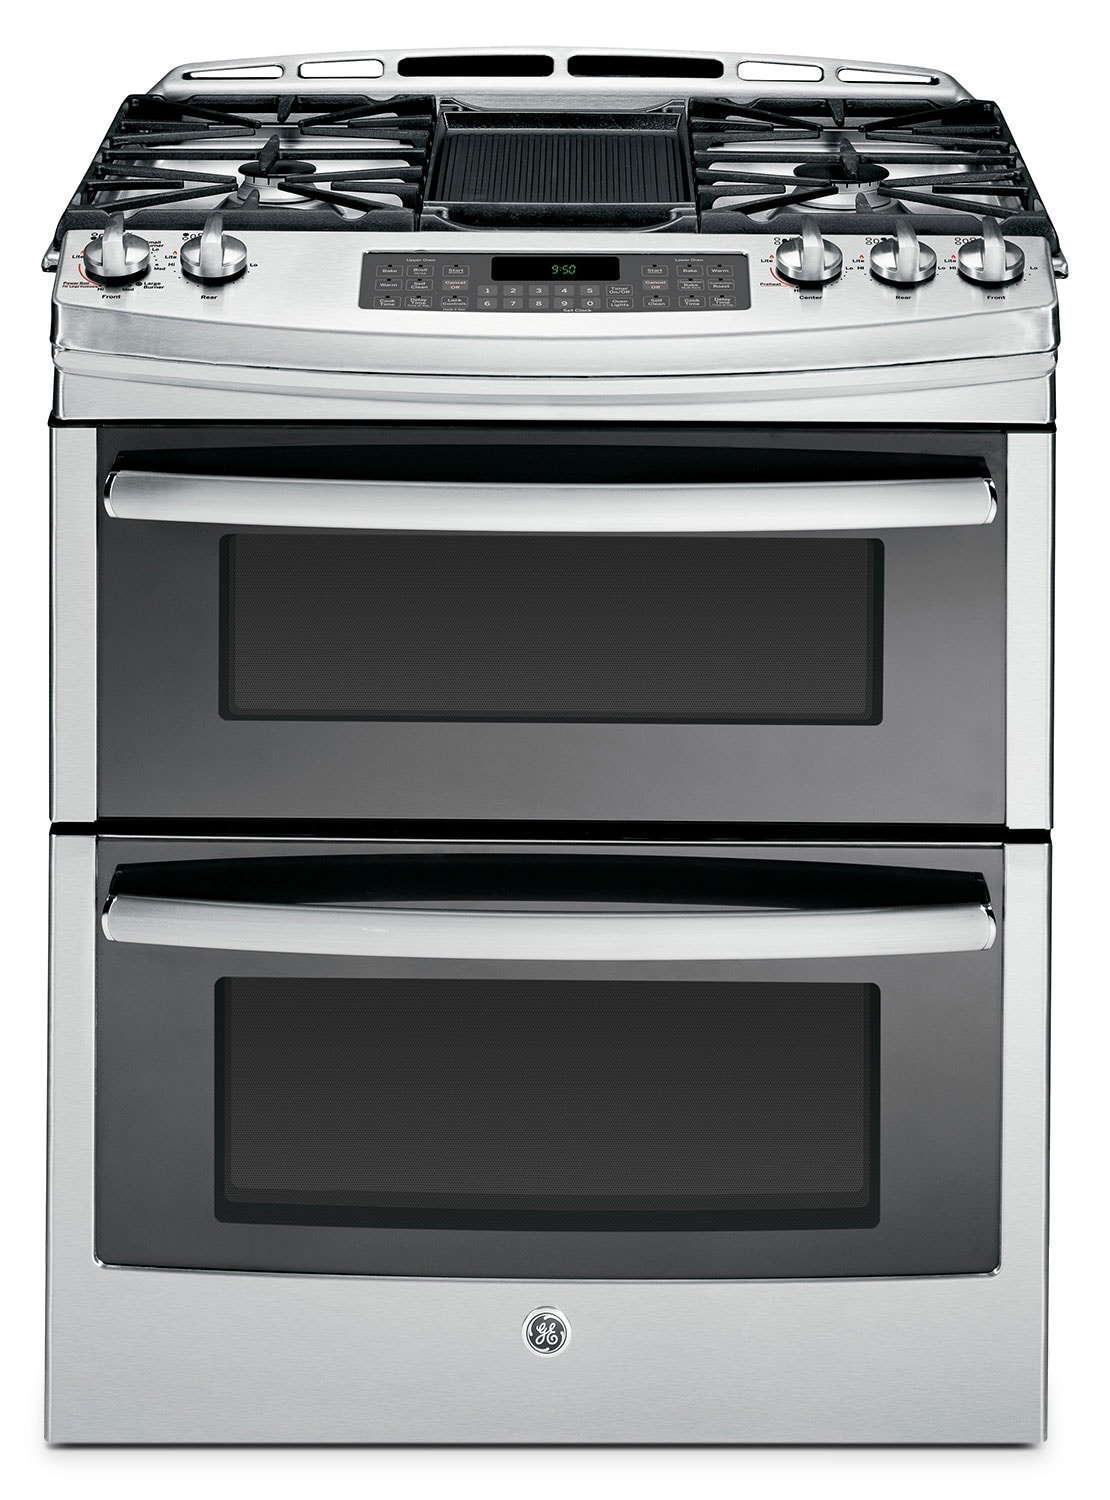 Kitchen small appliances edmonton - Ge Stainless Steel Slide In Gas Range 6 8 Cu Ft